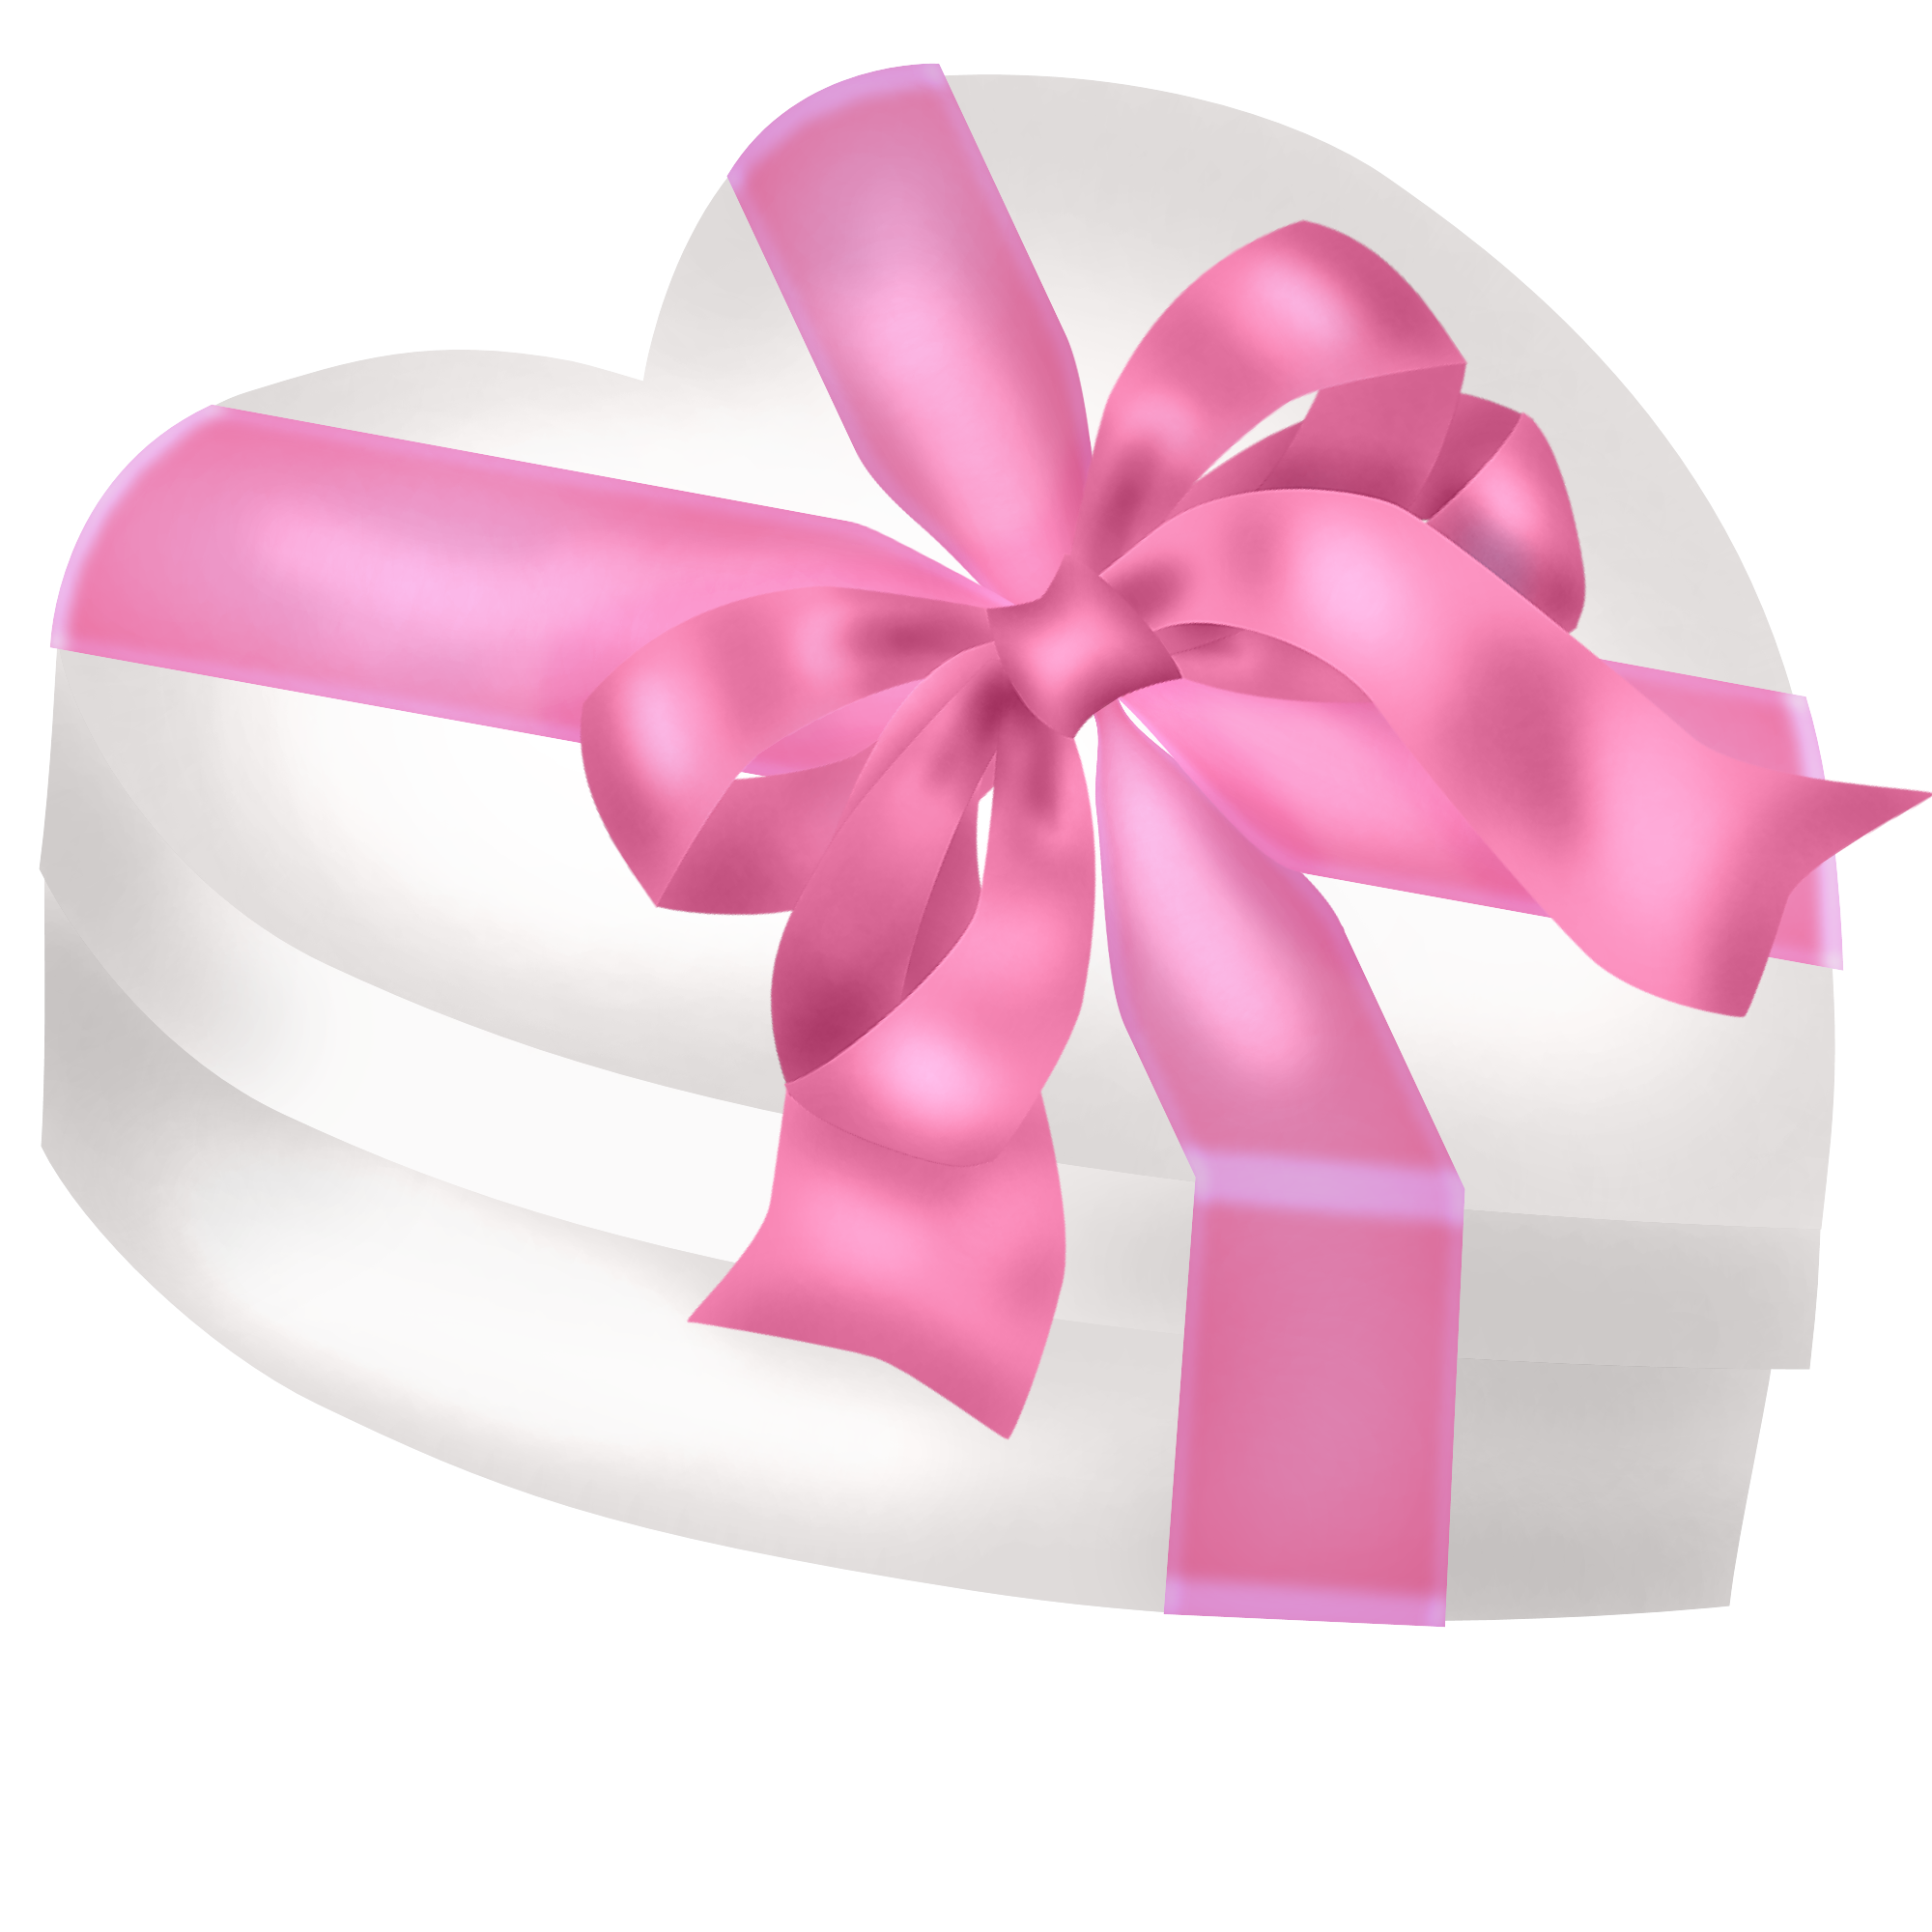 Pin by michele preston. Gift clipart hat box